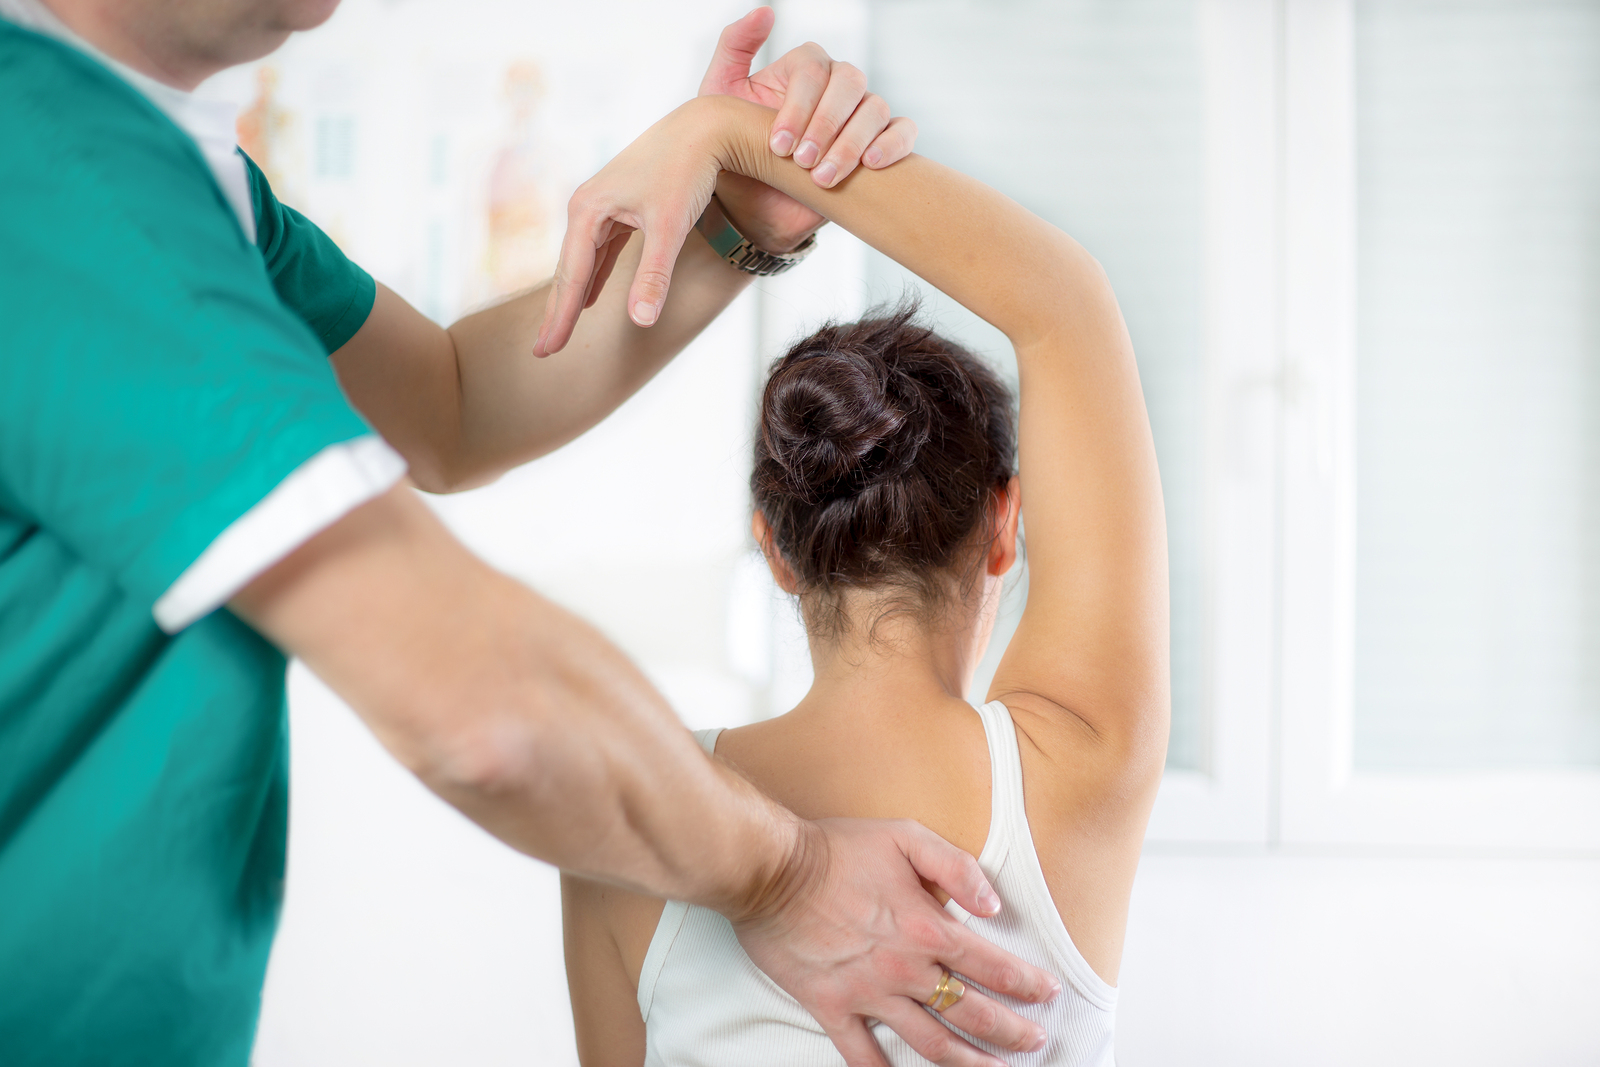 Whether you suffer from back pain, neck pain, headaches and migraines, or all three, our Everett chiropractor at Cornerstone Chiropractic can help you heal.